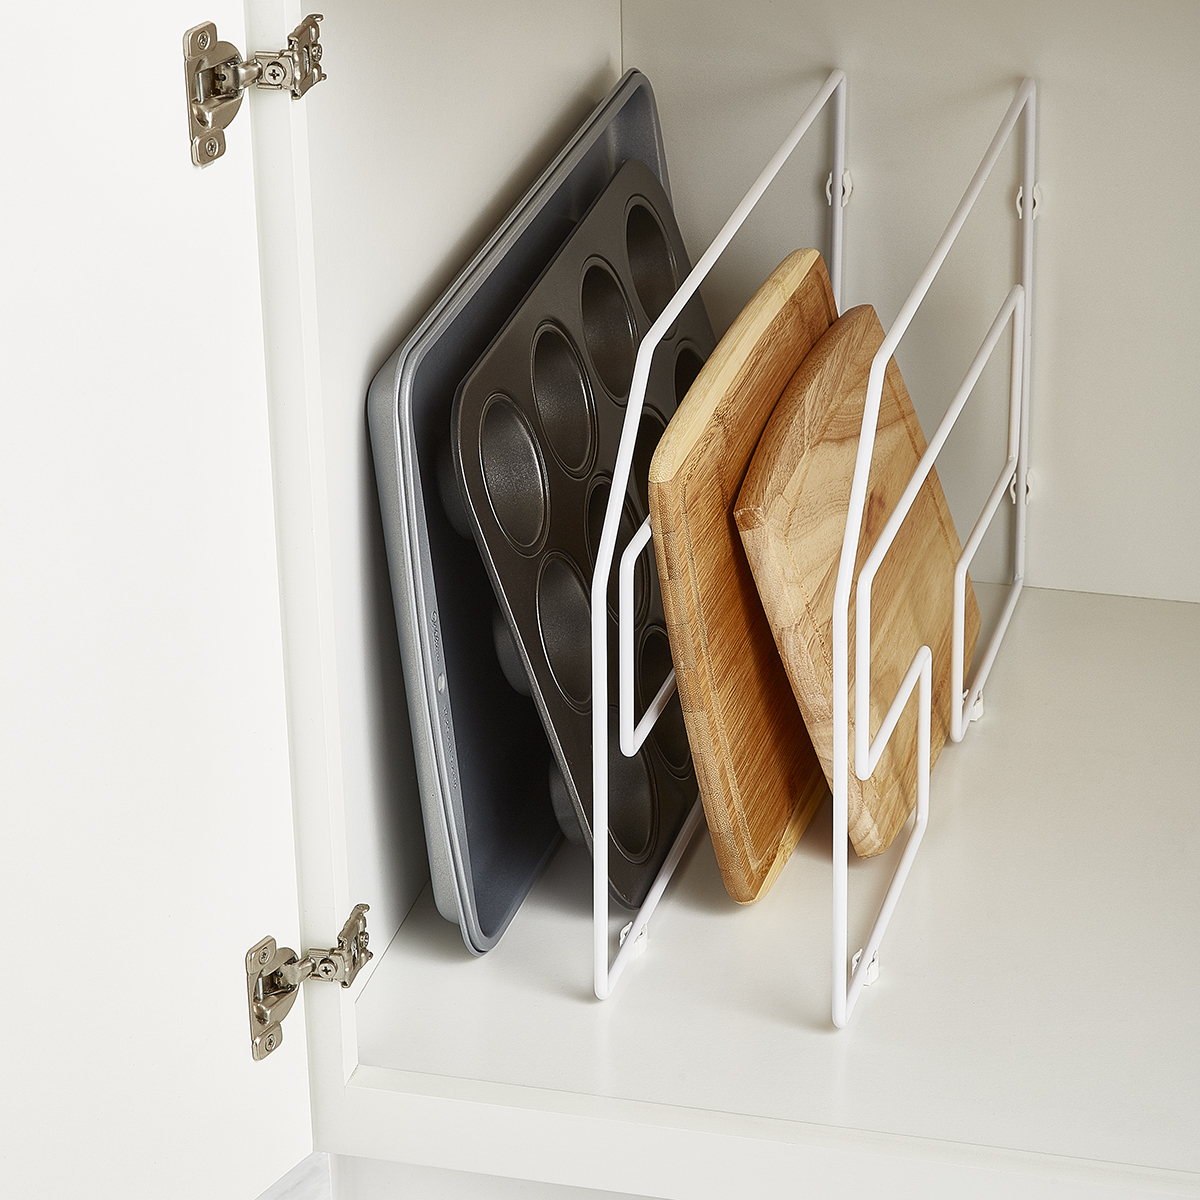 Design Ideas 12 Tray Divider The Container Store